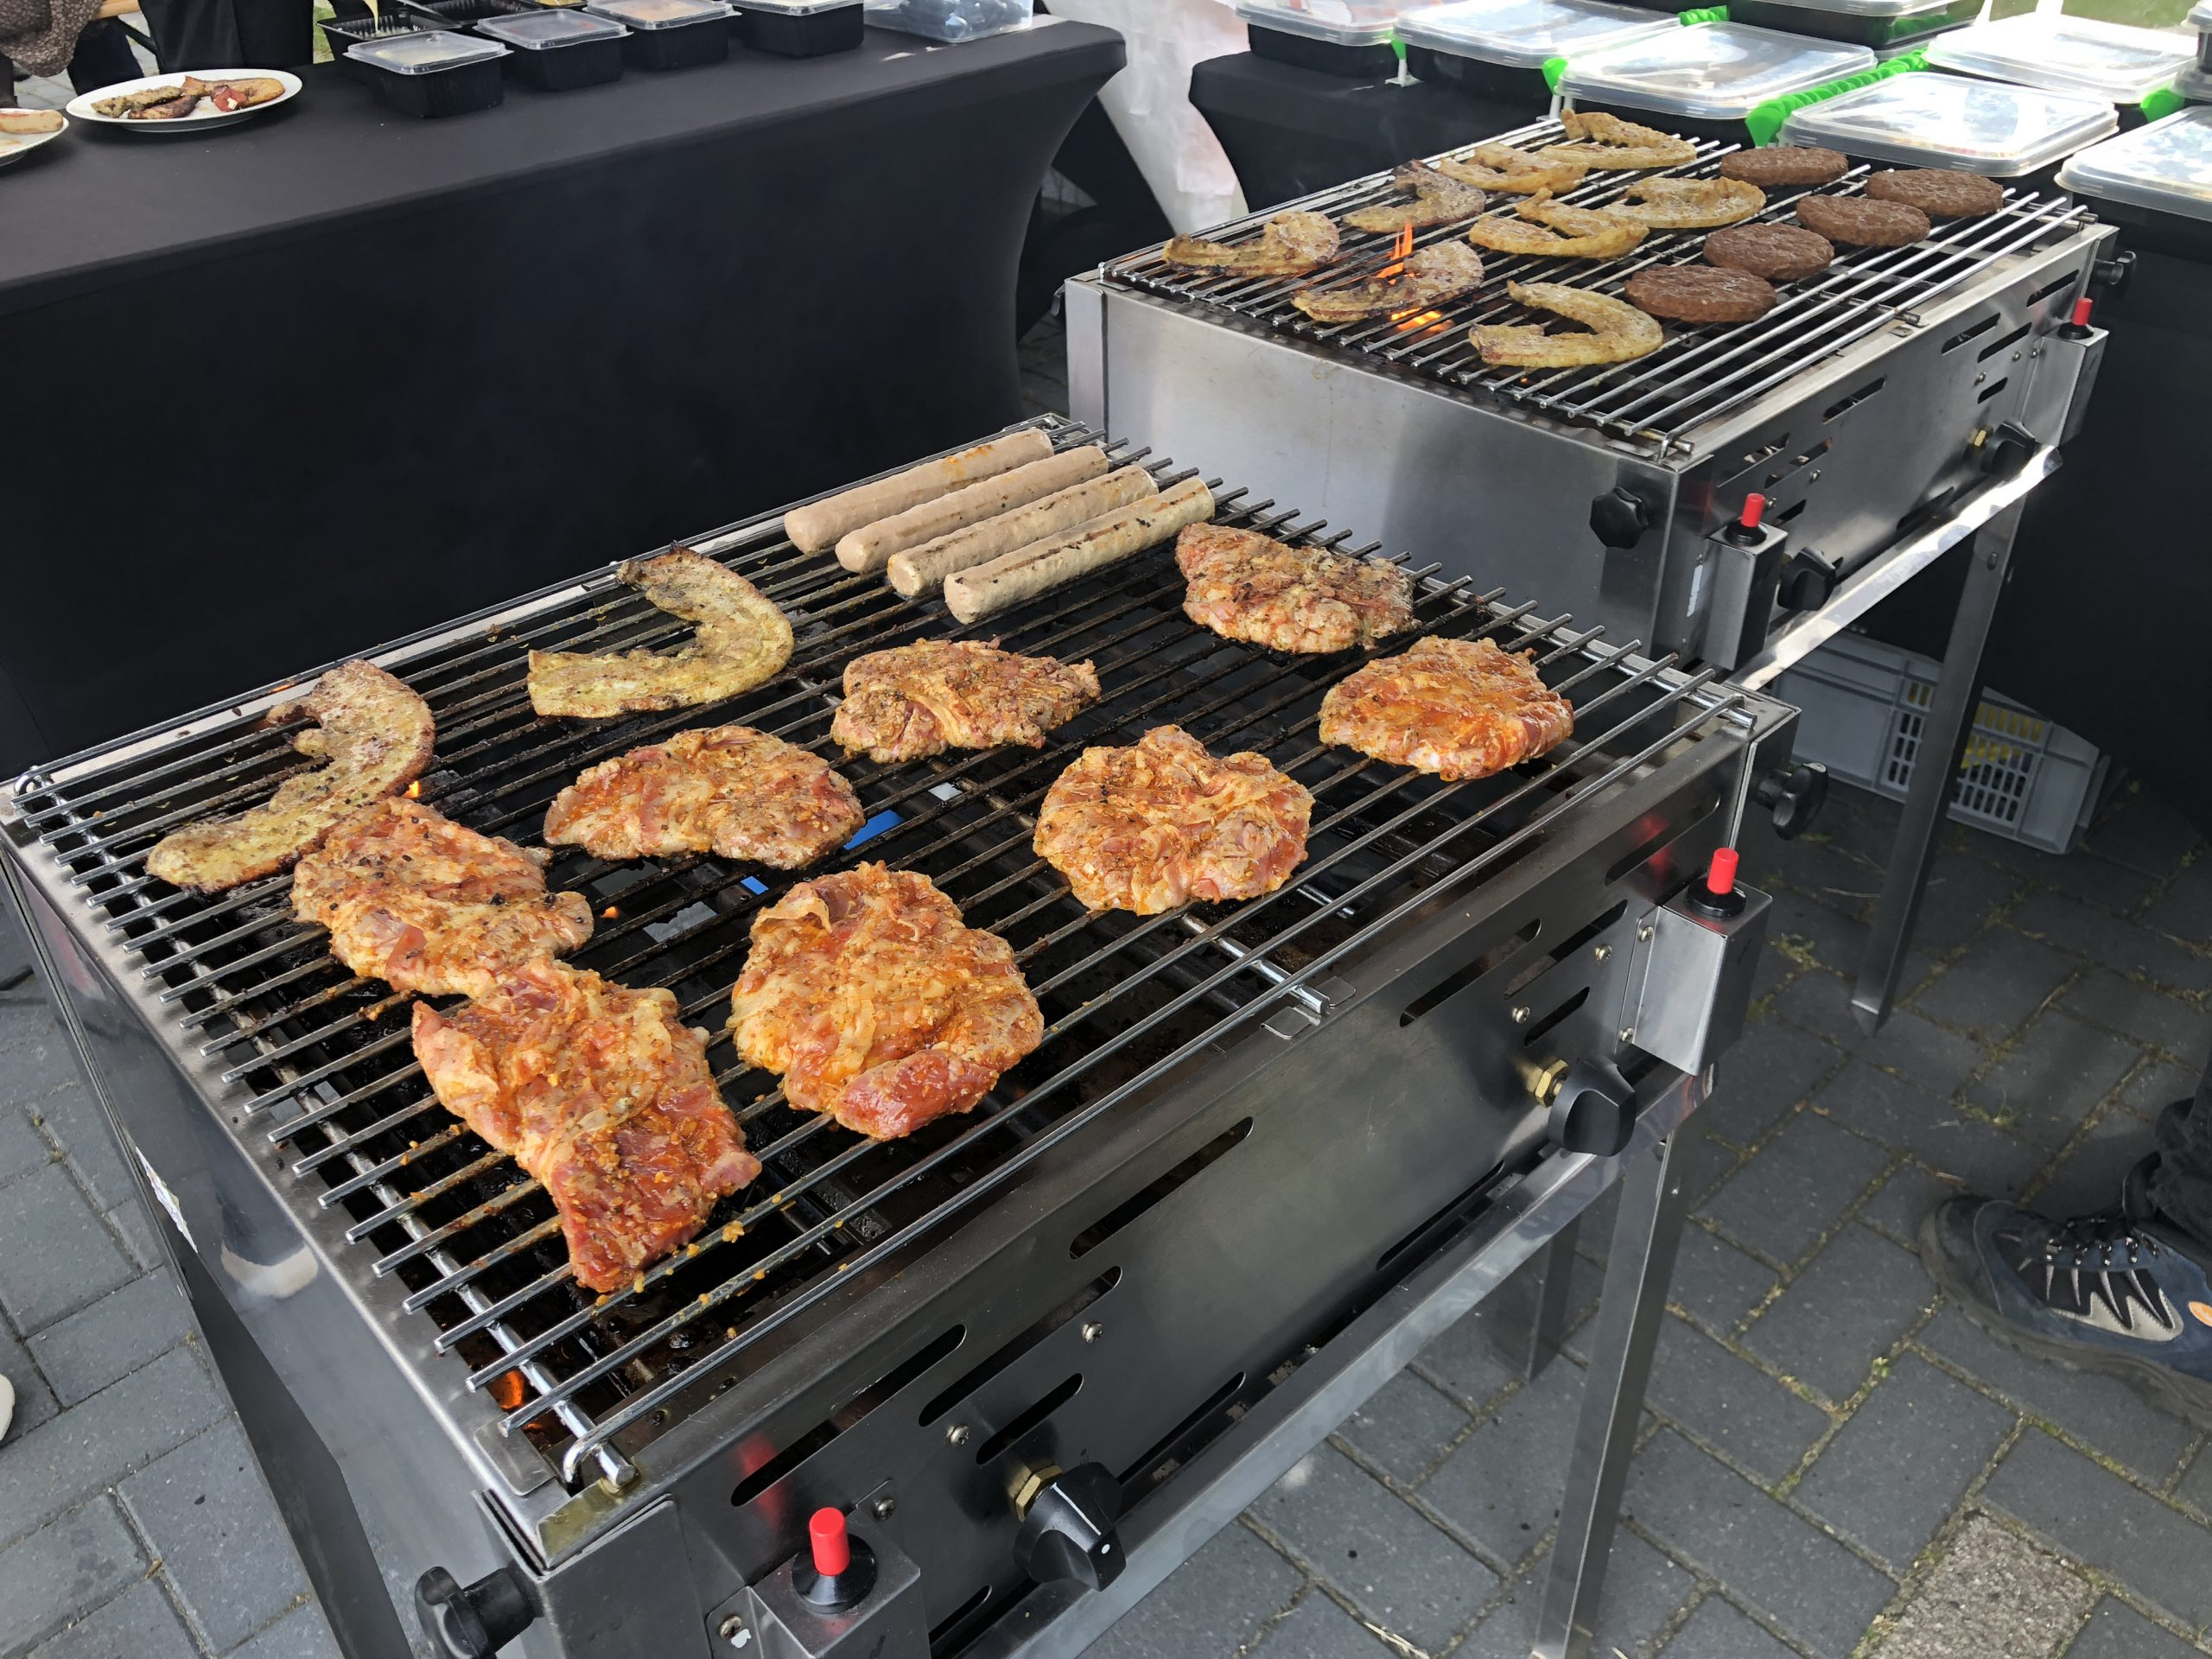 Bestel uw all in barbecue in Groningen | A Z Barbecue